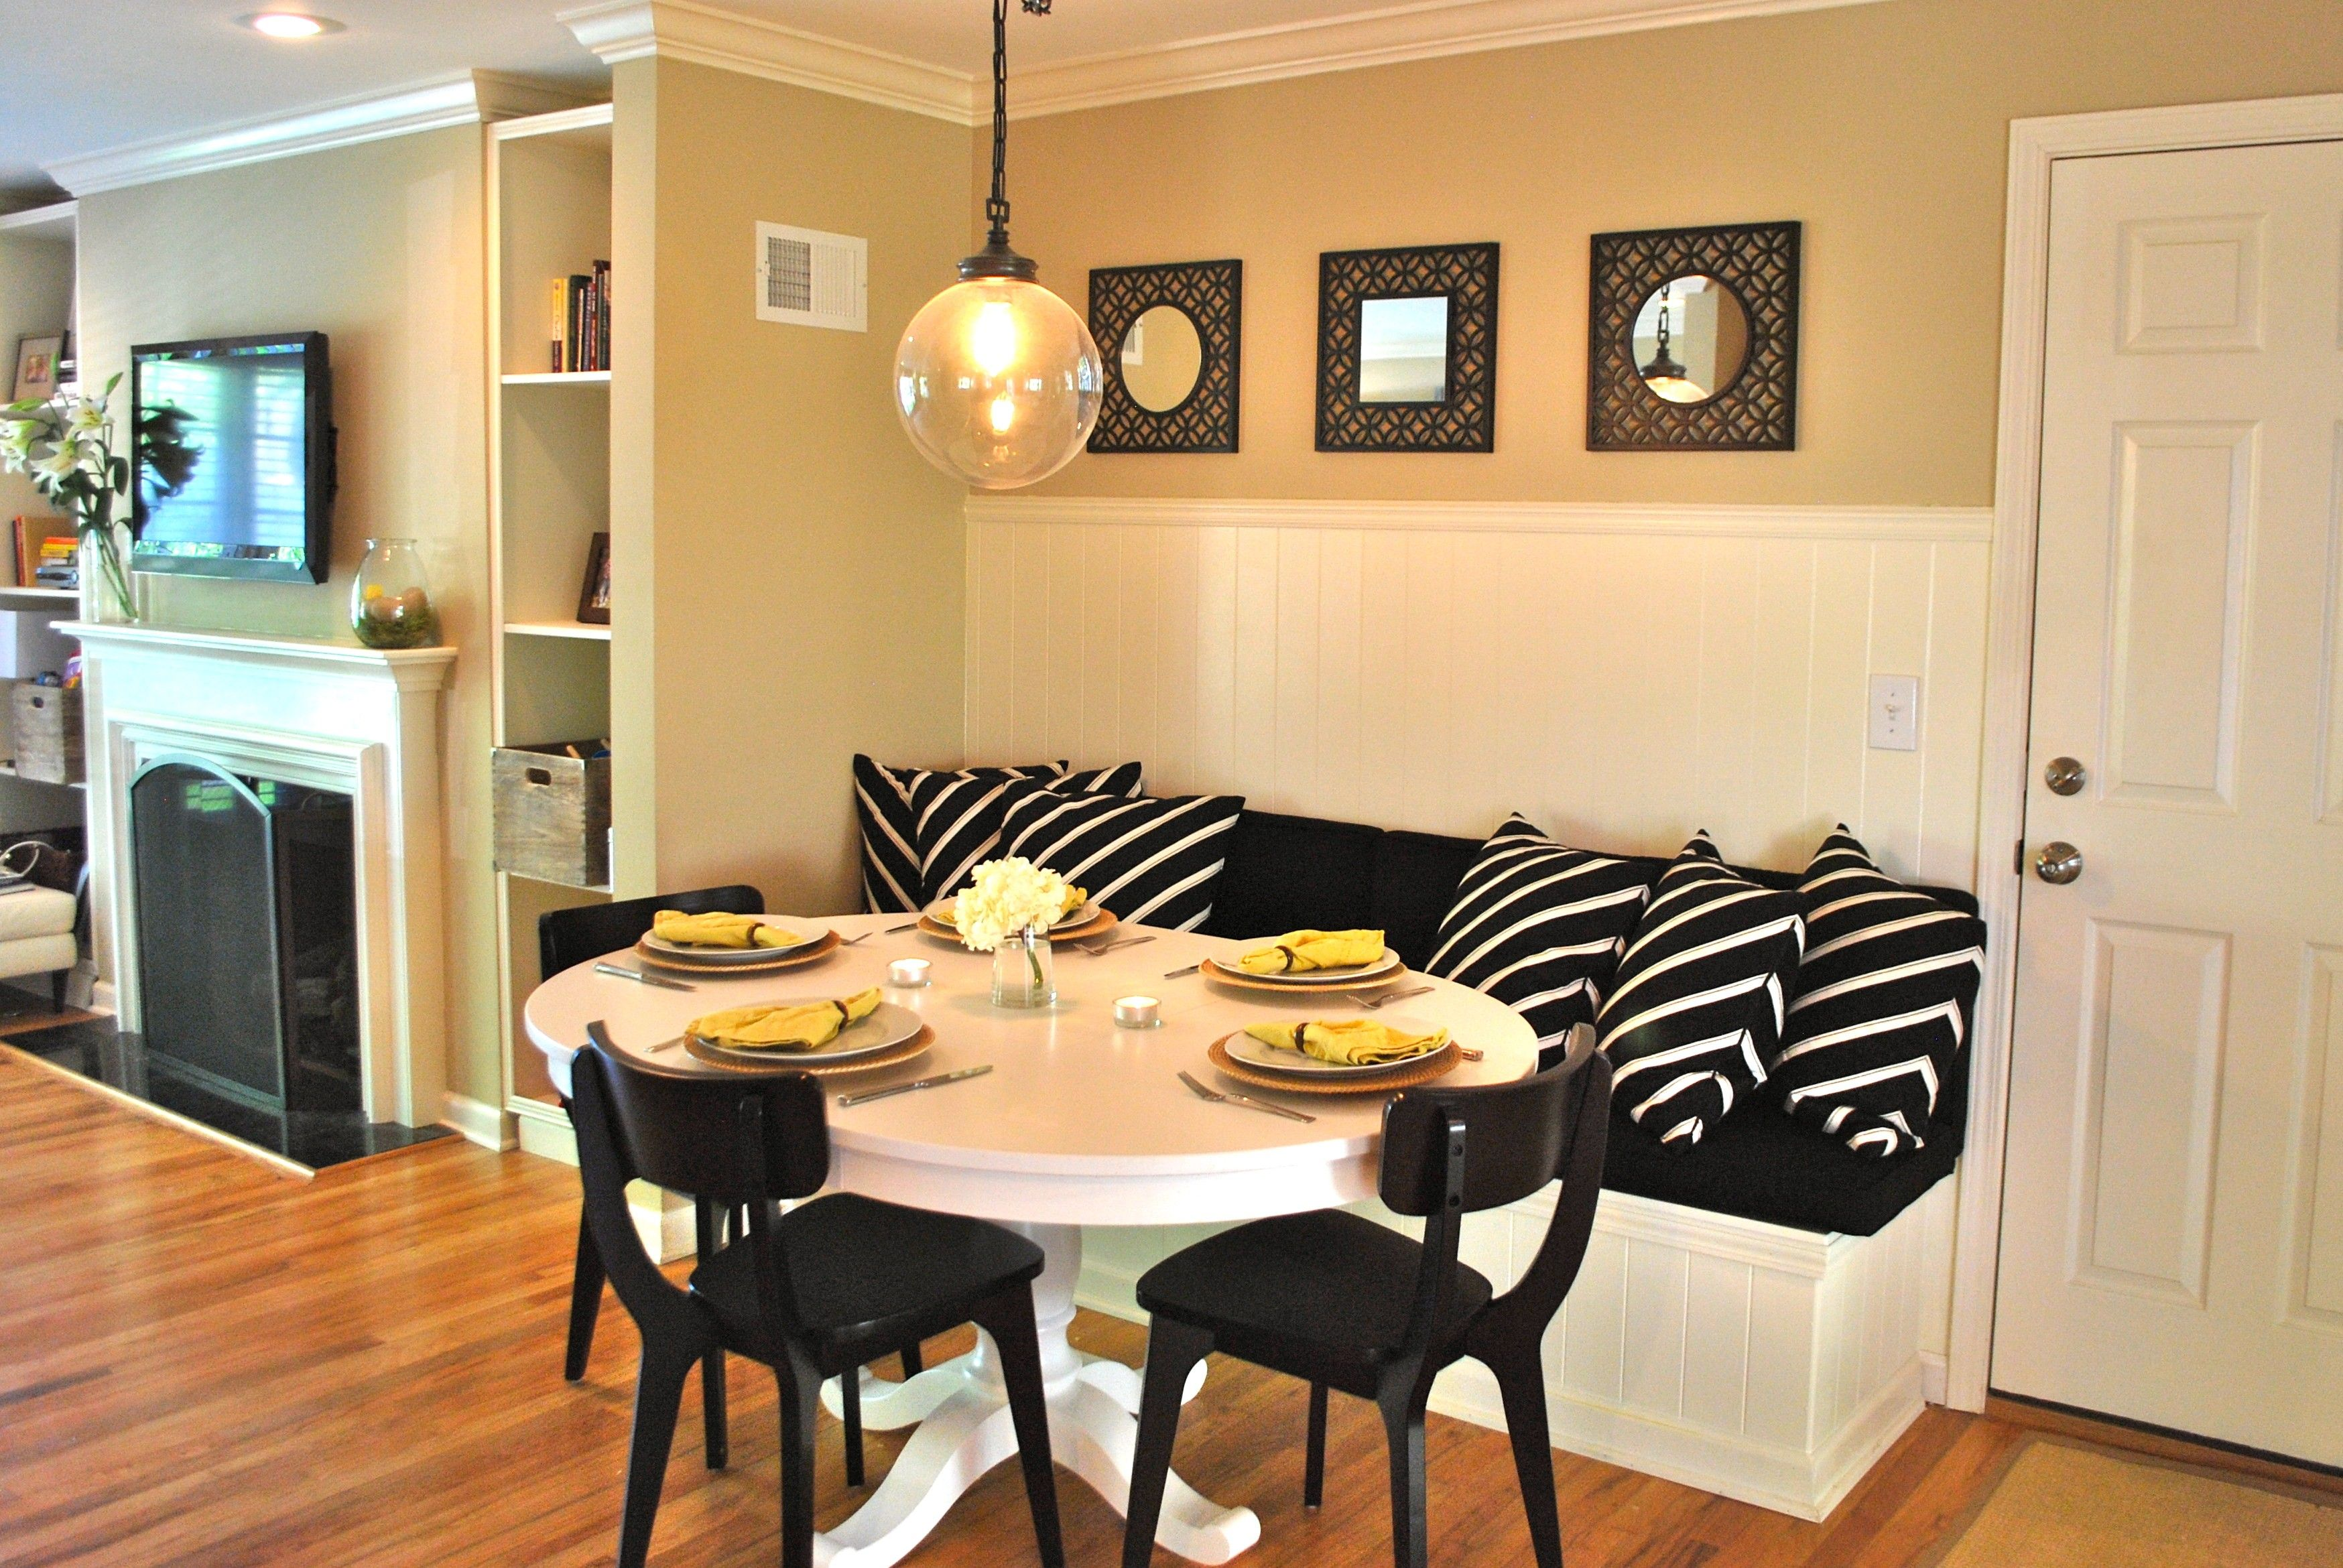 Dining Room : Classy Corner Dining Table With Bench Using Black .